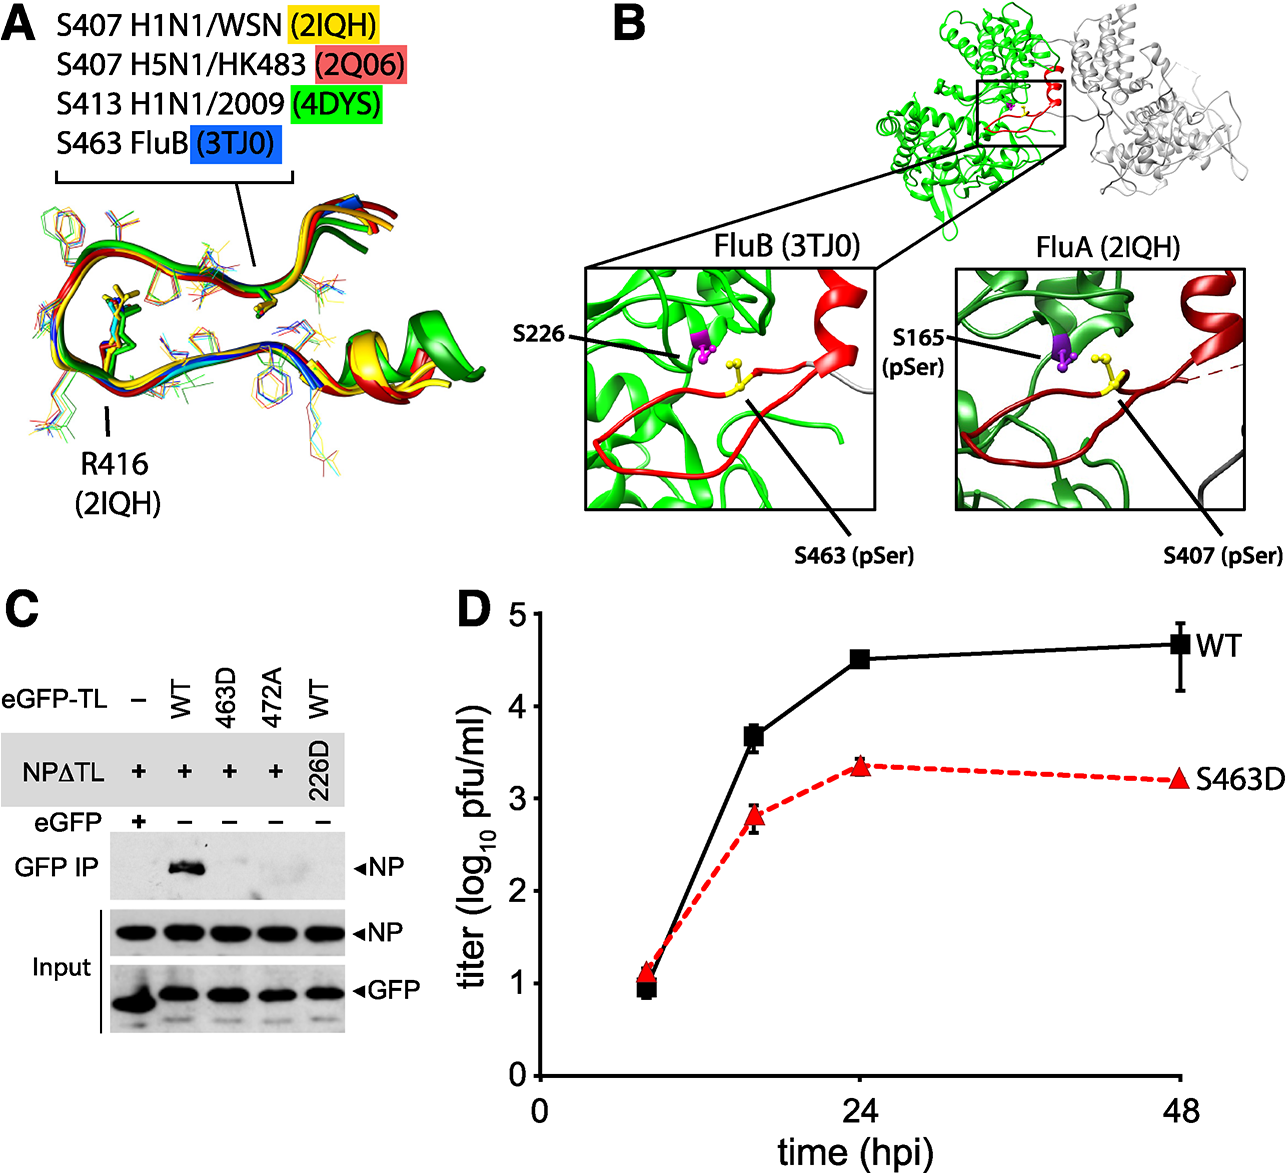 Phosphomimetic mutations in influenza B NP disrupt tail loop-binding groove interaction and attenuate virus replication.